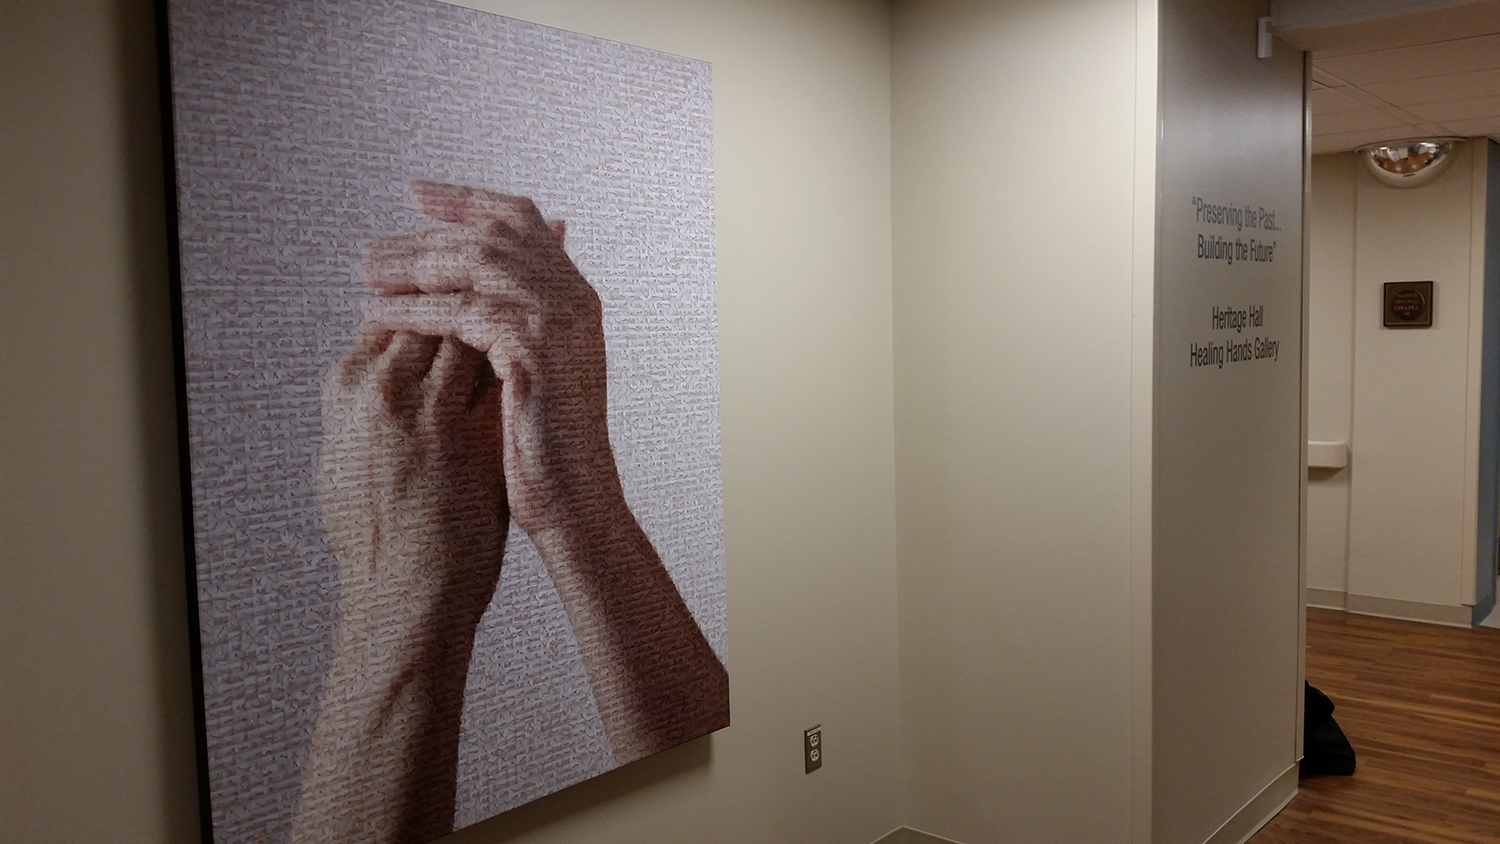 Healing Hands custom wall installation at Robert Wood Johnson University Hospital, Rahway, NJ